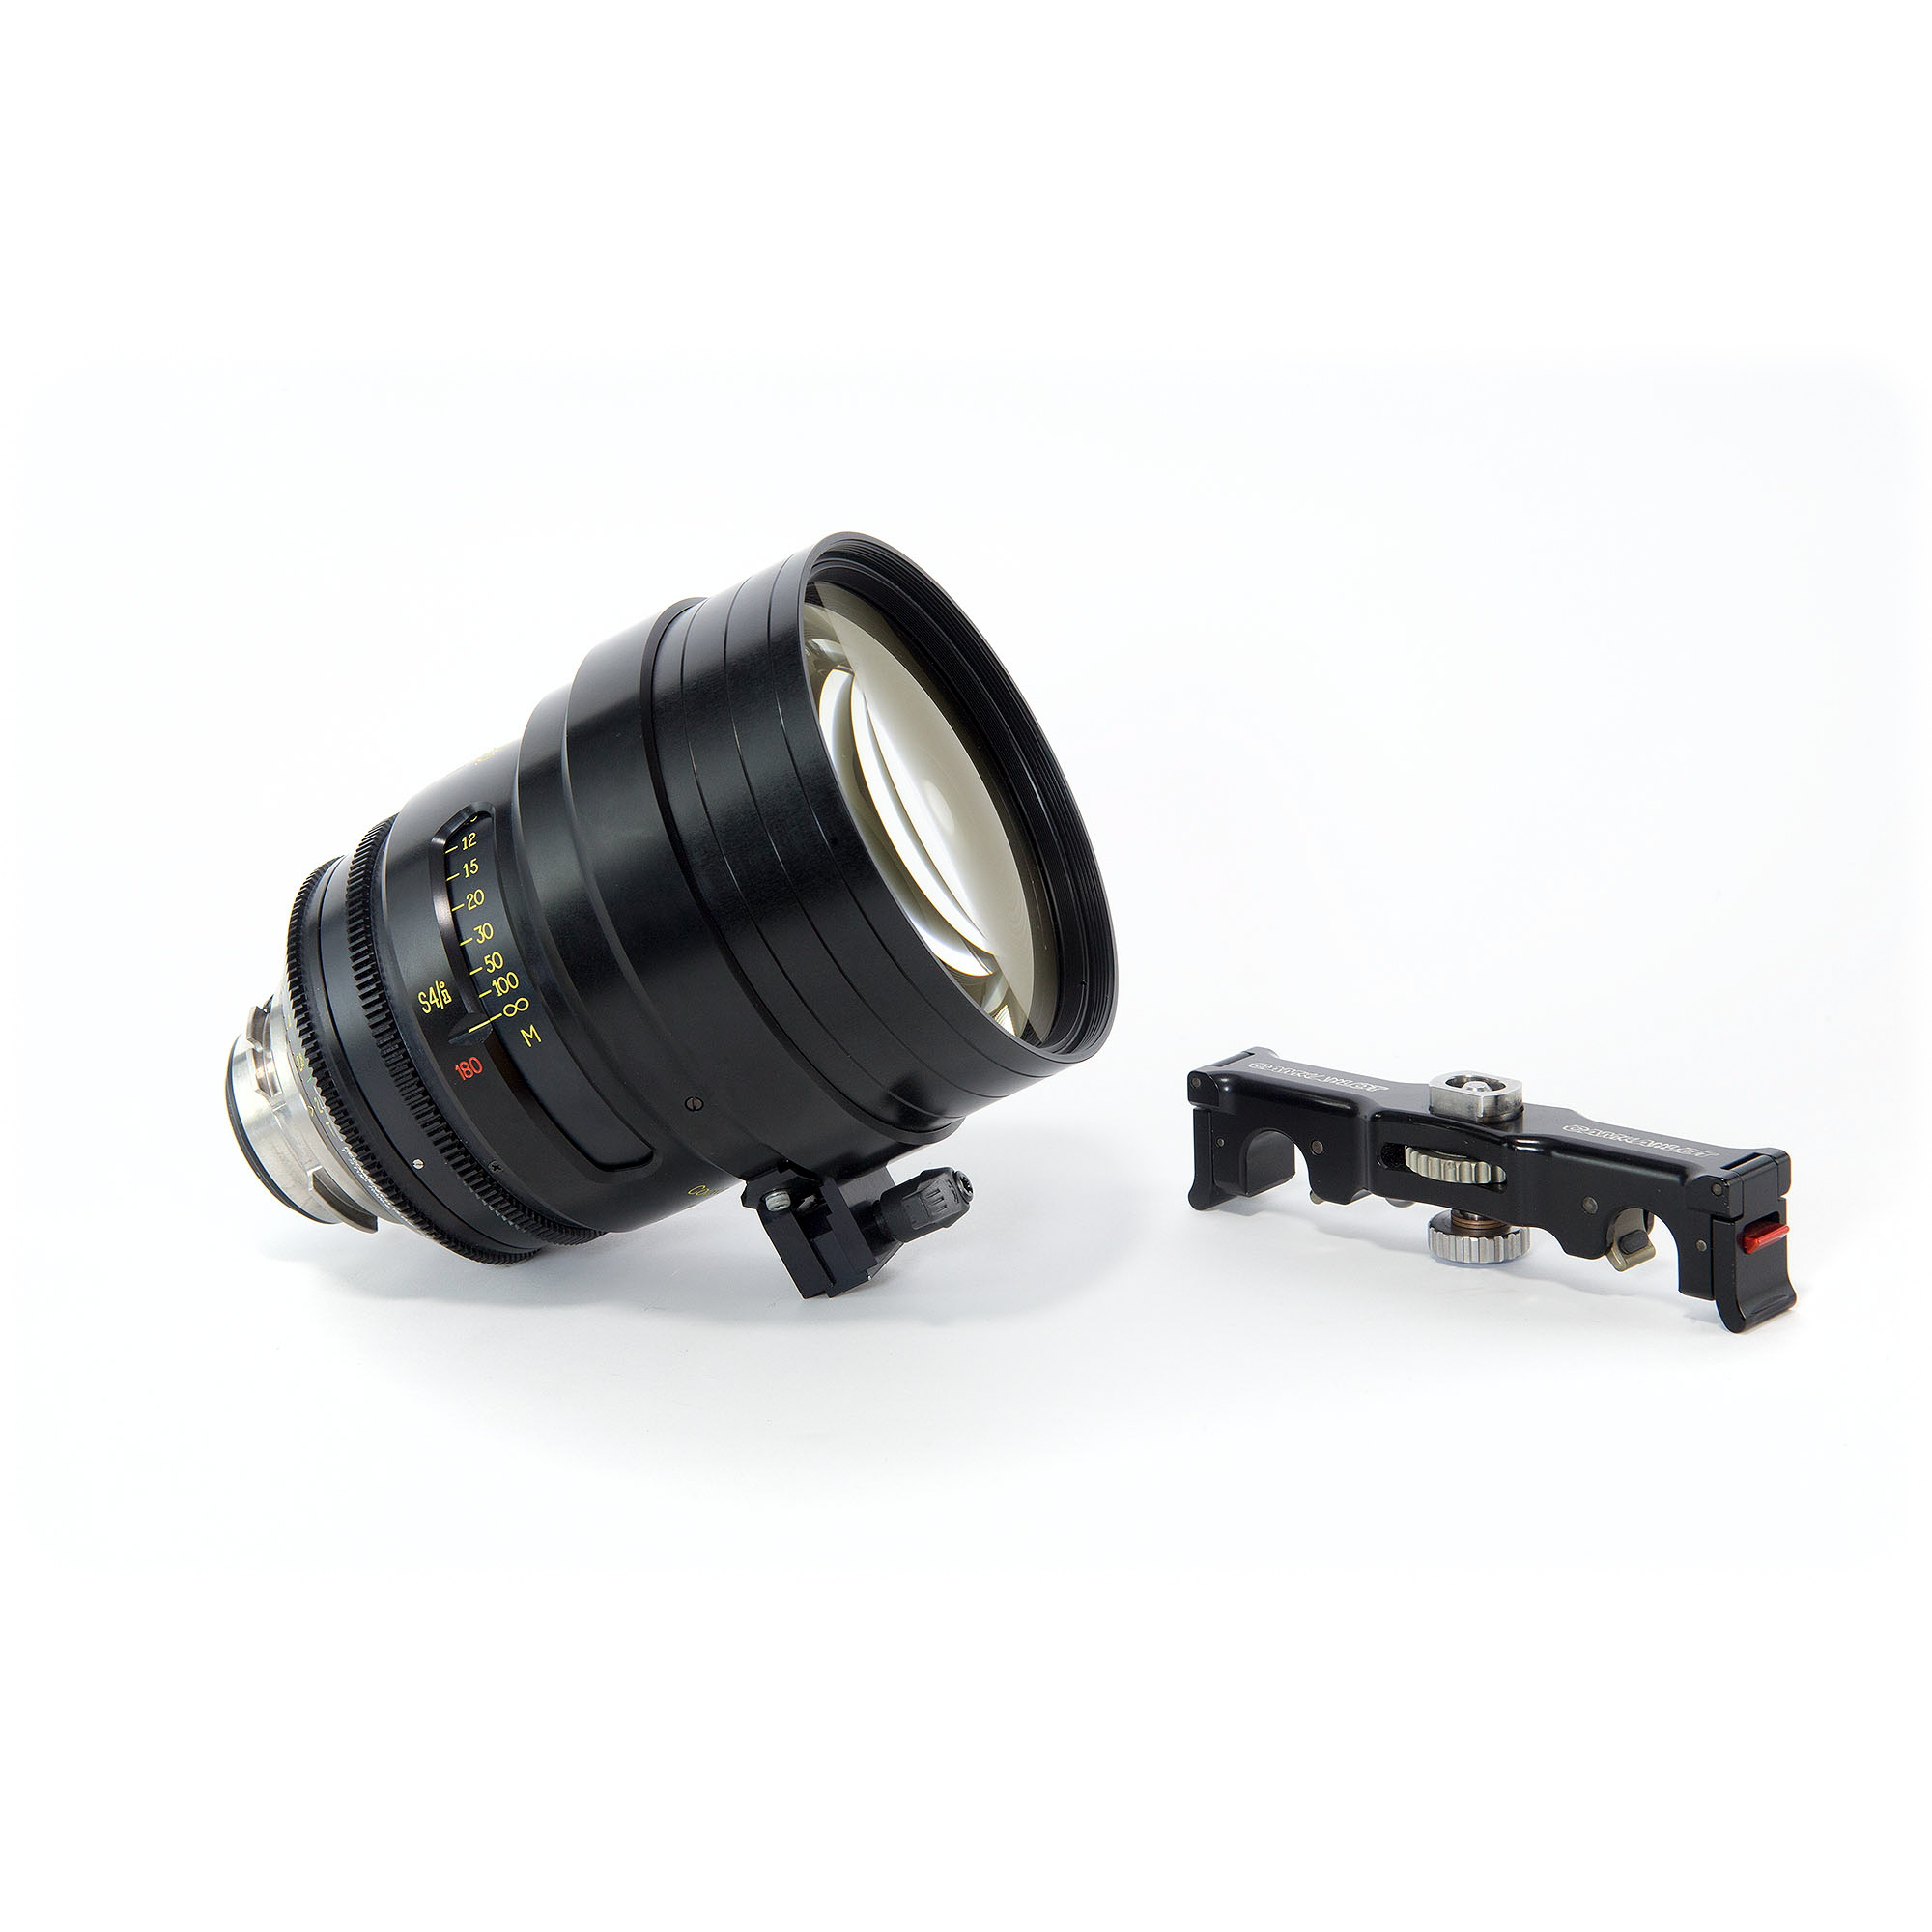 cooke_s4_180mm